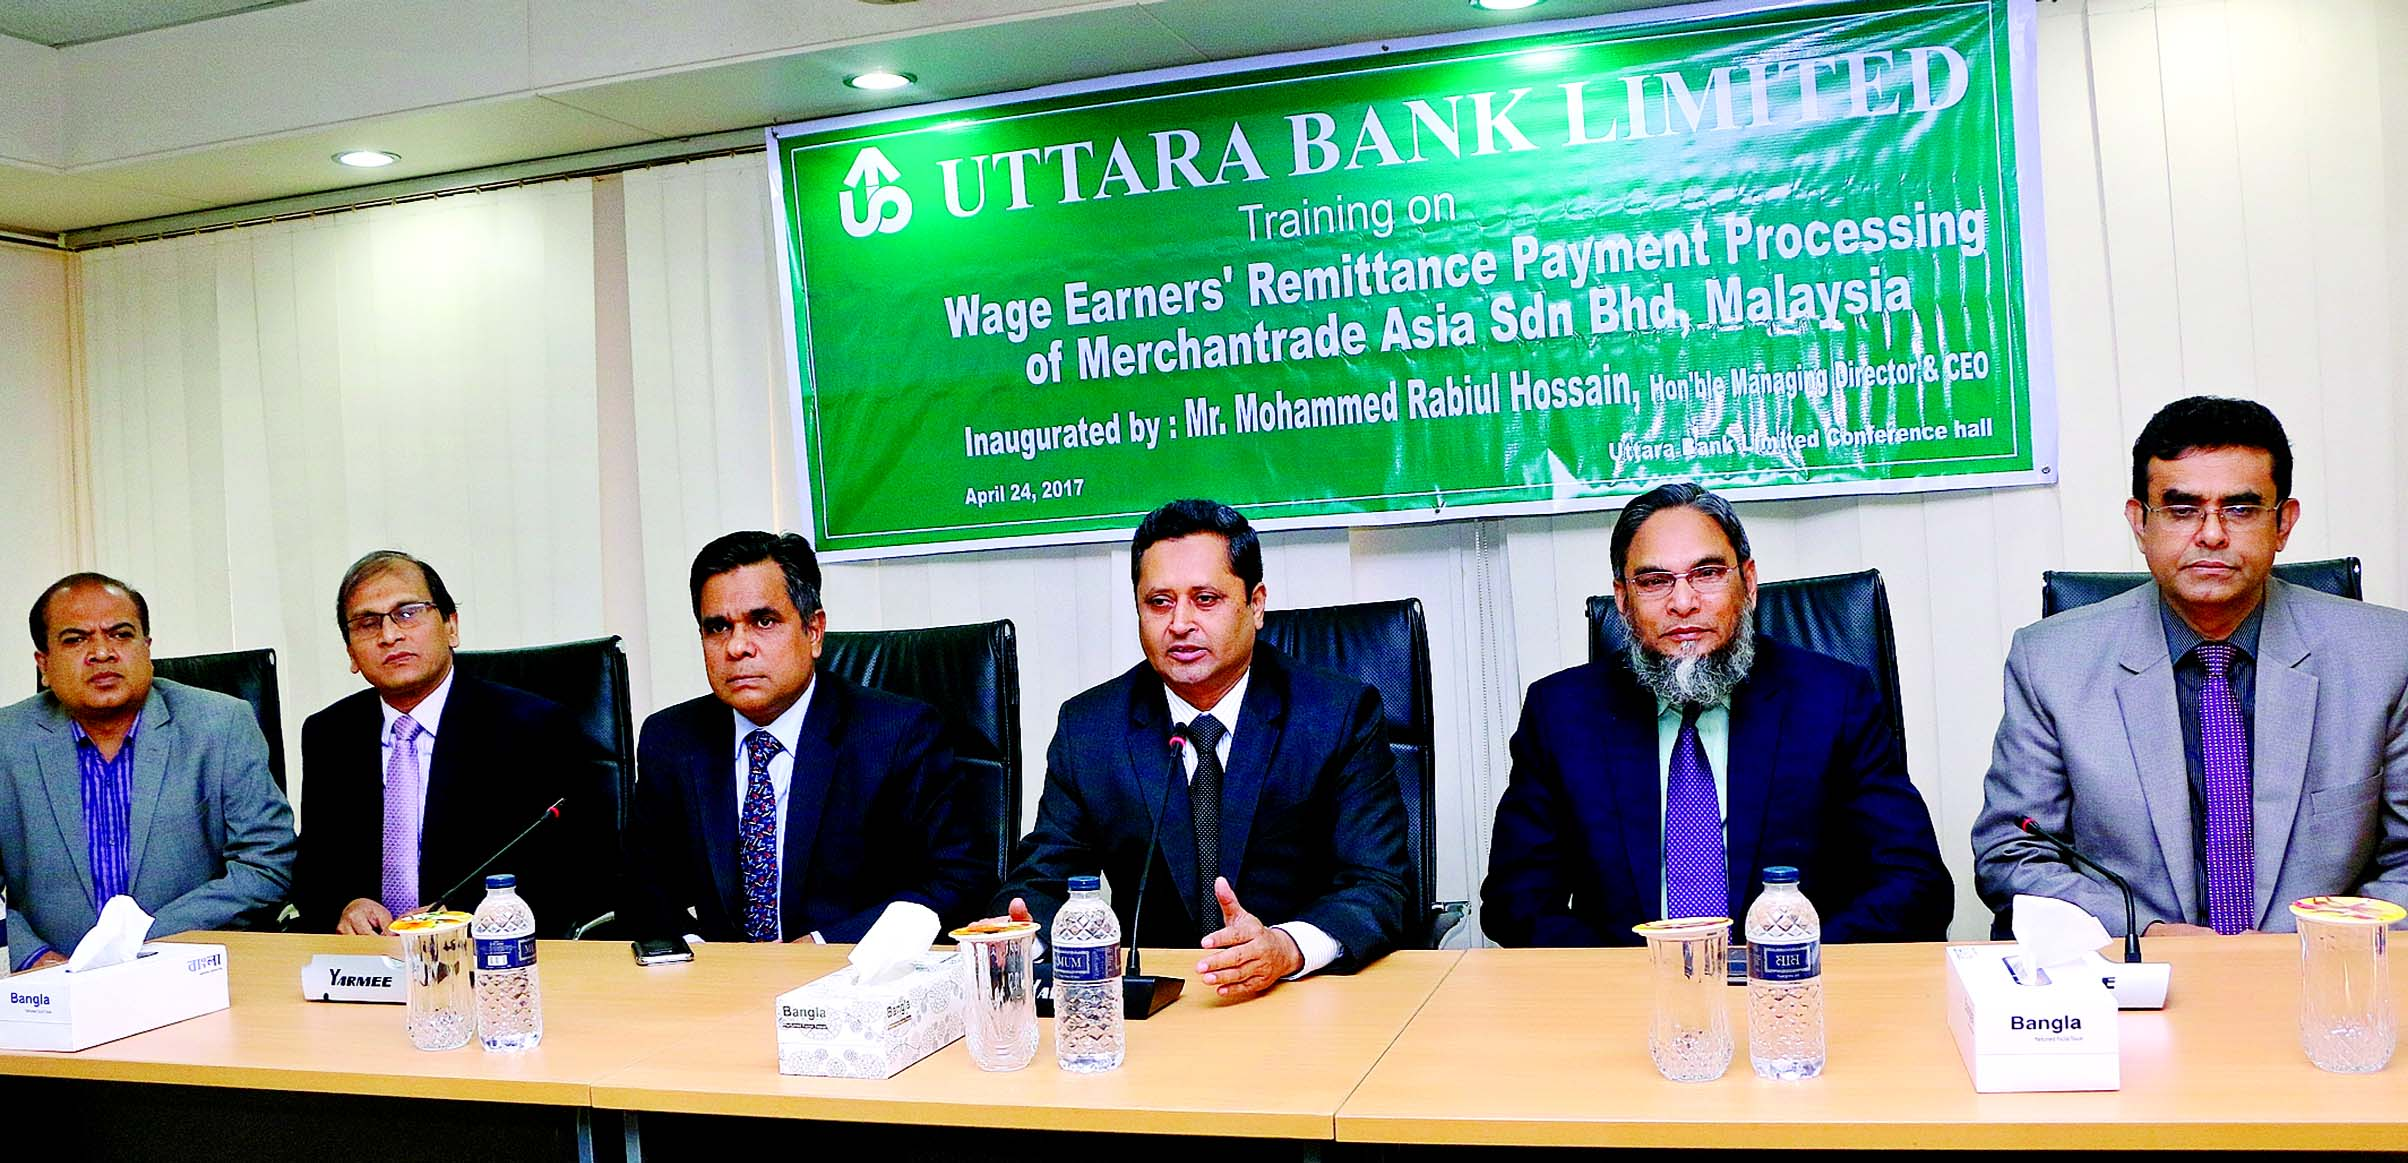 Mohammed Rabiul Hossain, Managing Director of Uttara Bank Limited, addressing at the Training Programme on